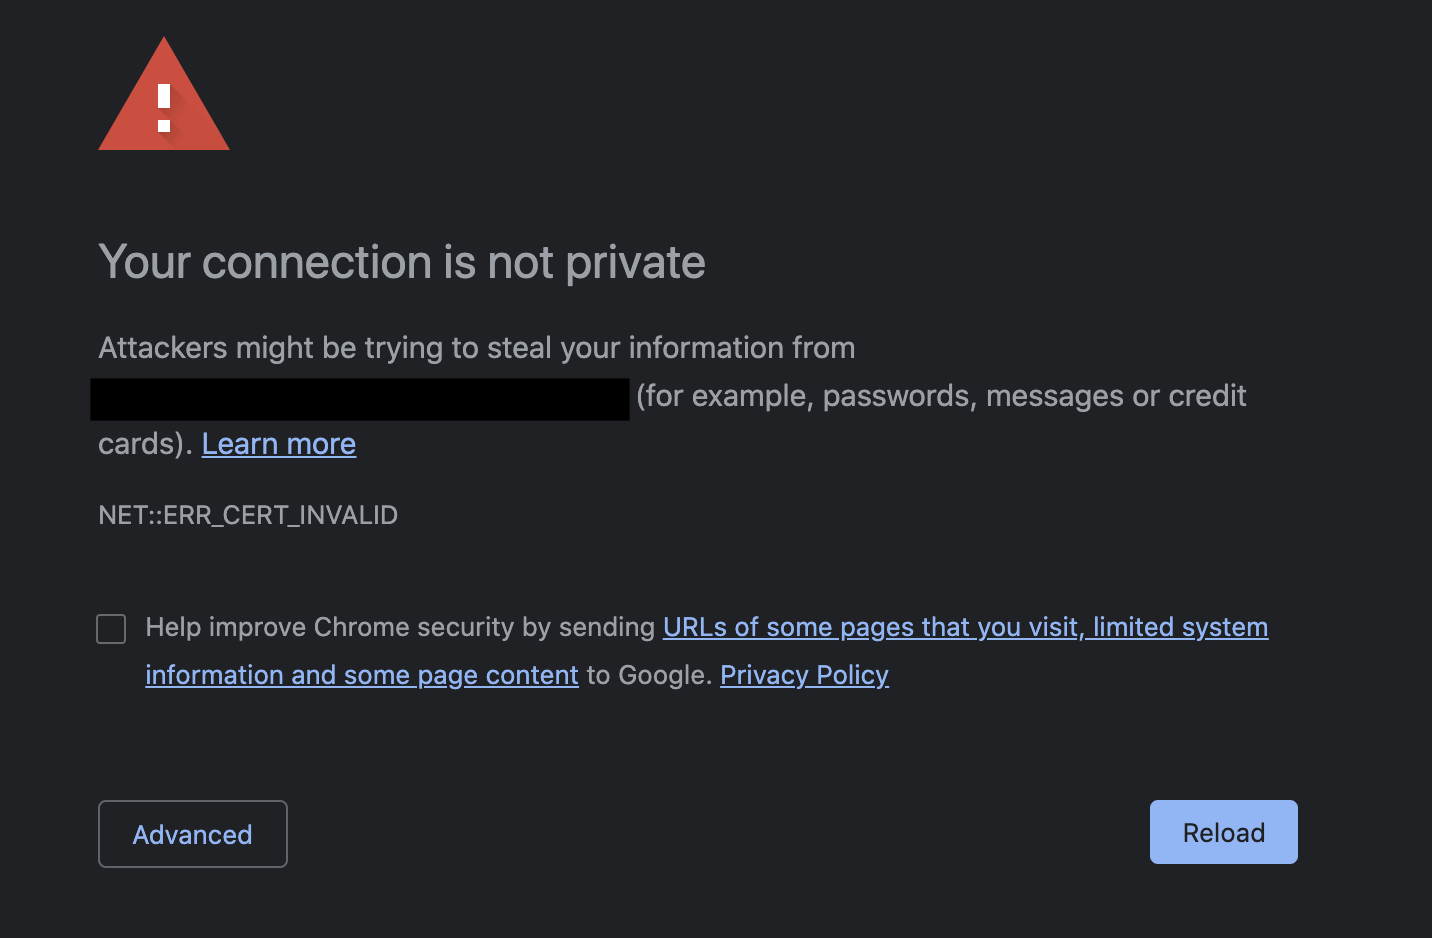 MacOS Chrome connection is not private